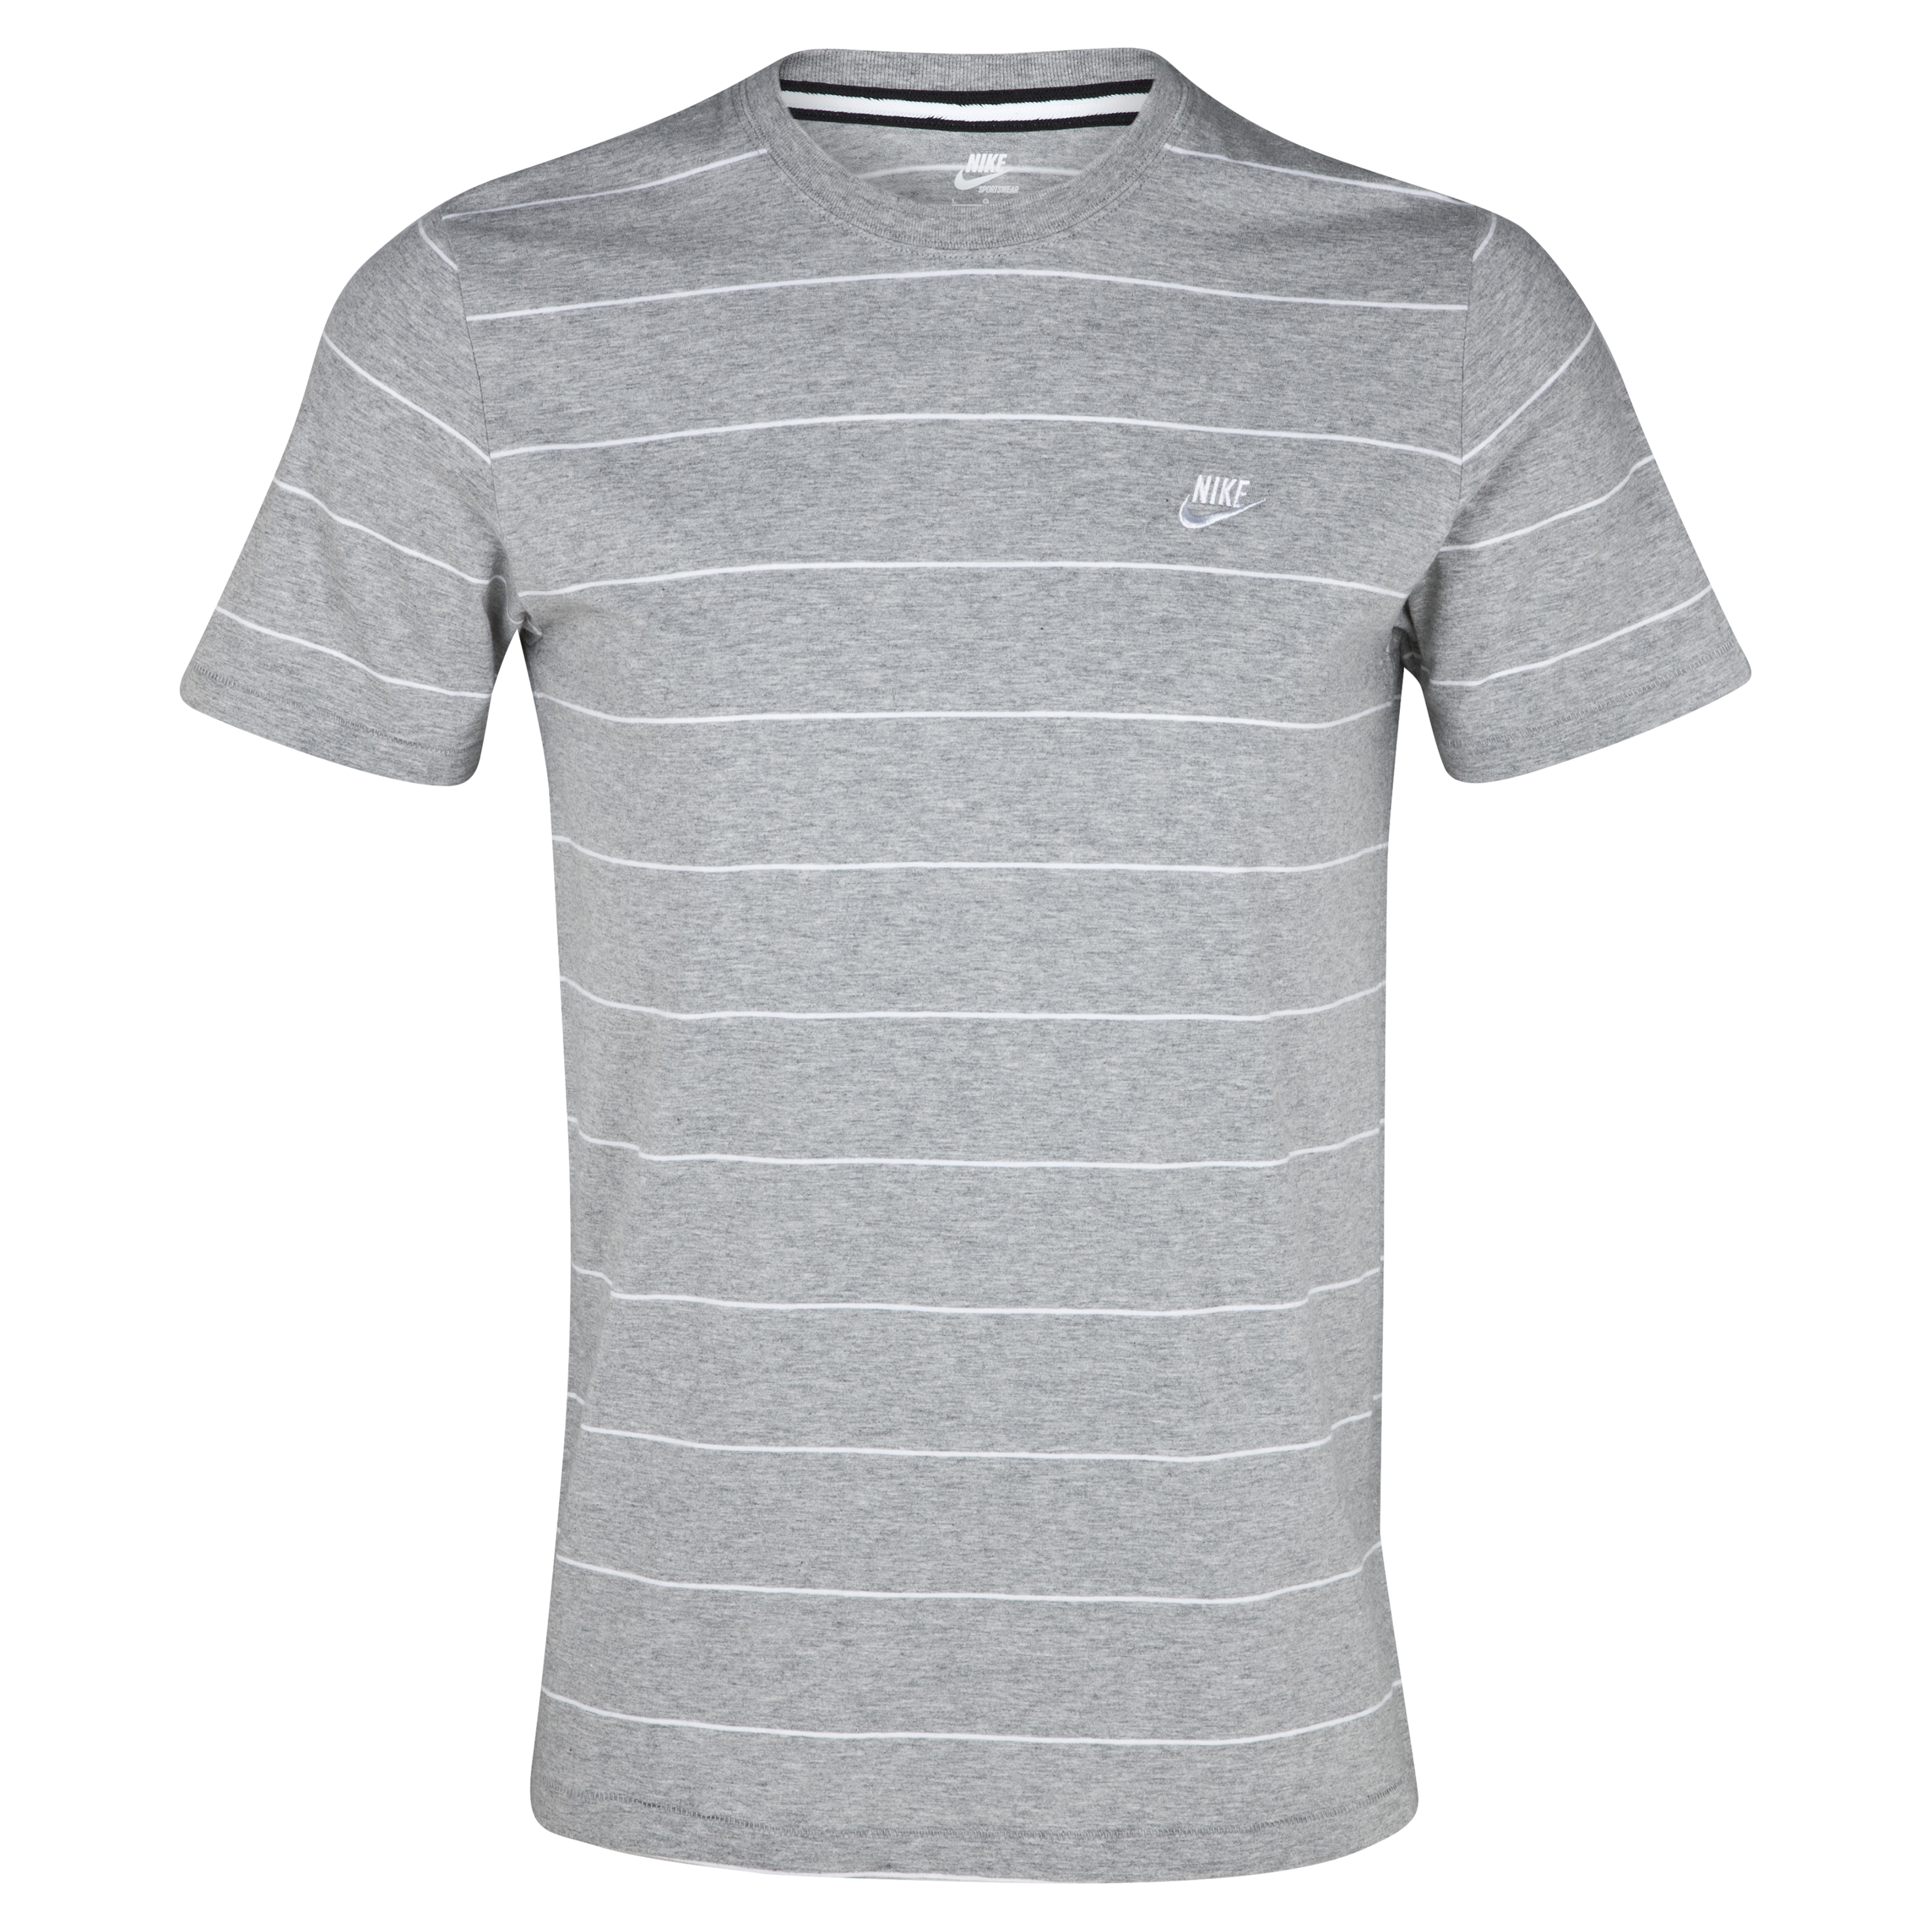 Nike YD Striped Futura Tee - Dark Grey Heather/White